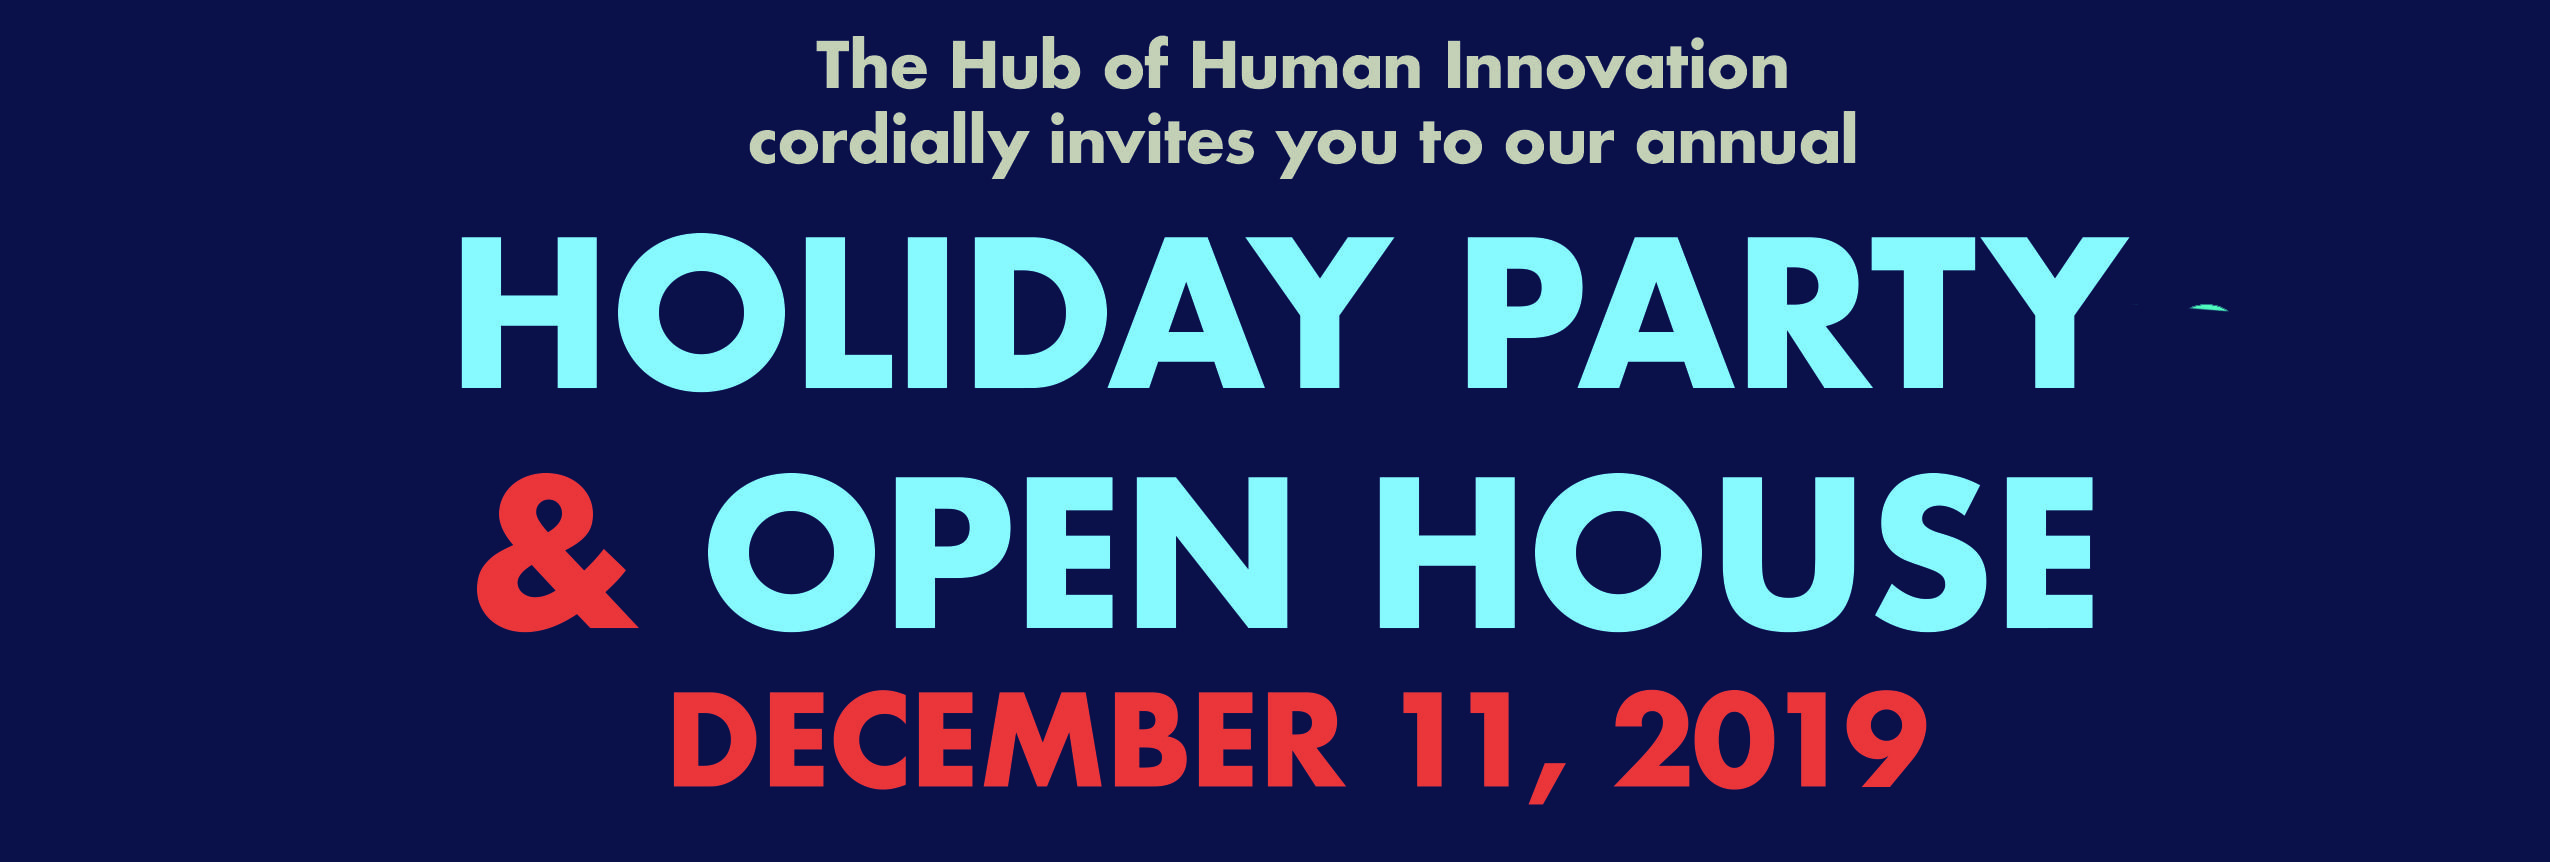 Annual Holiday Party & Open House